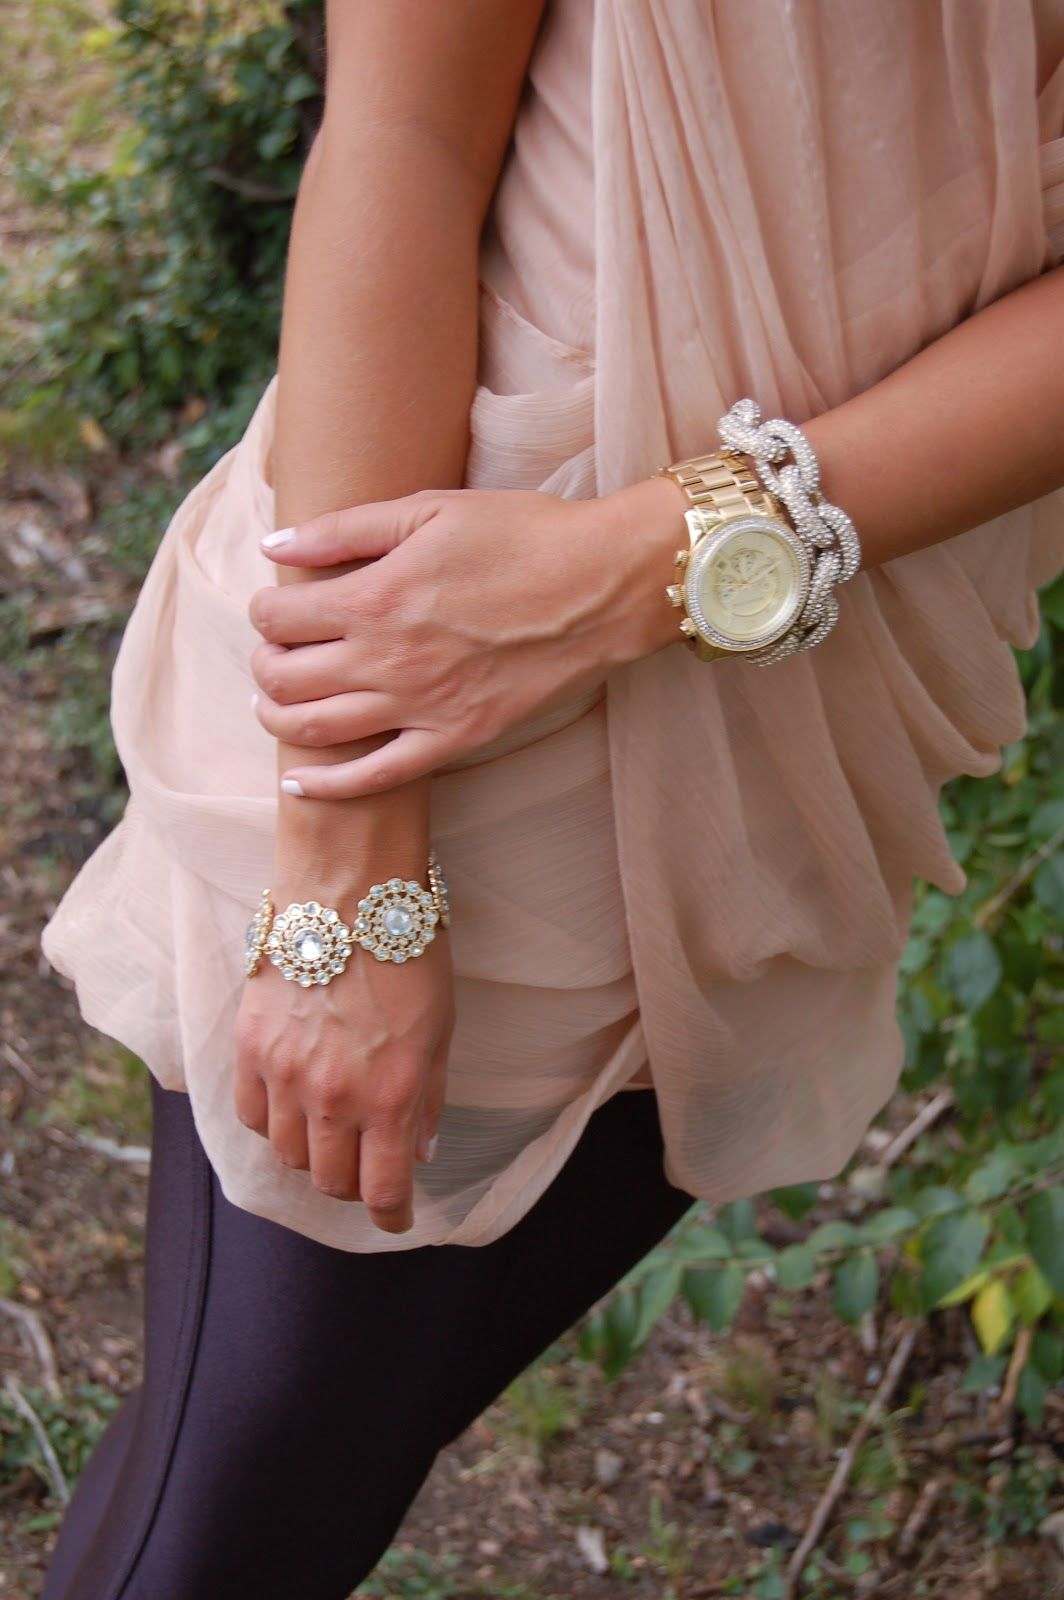 Michael Kors watch with Ily Couture bracelets...so pretty! #jssouthernchic #armcandy #bling